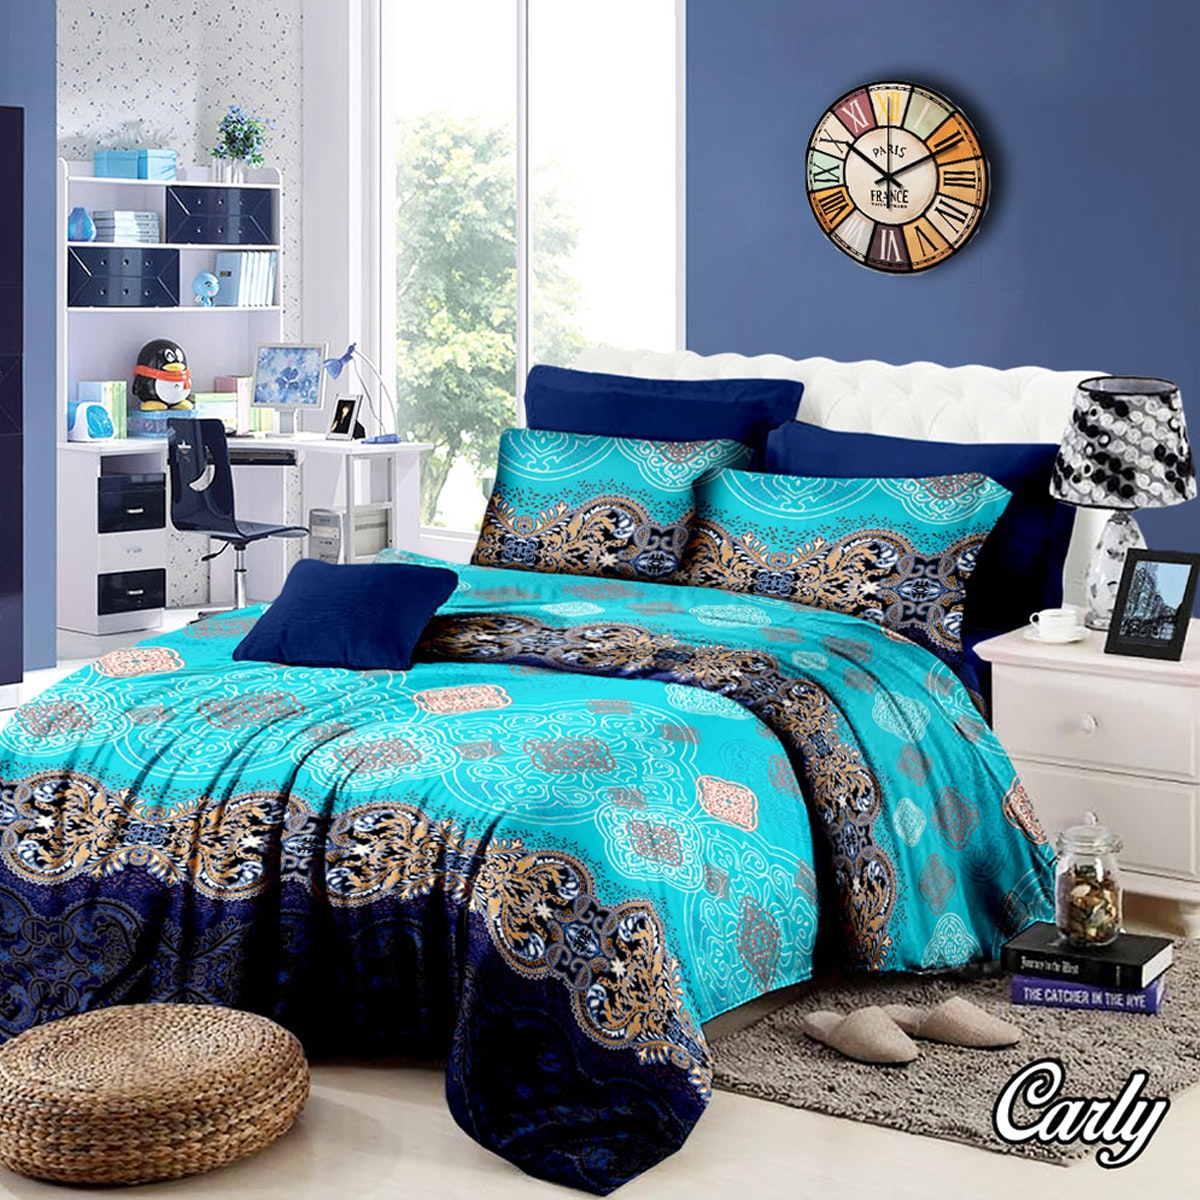 Pesona Set Sprei Motif Carly (Disperse) Uk 180 T20